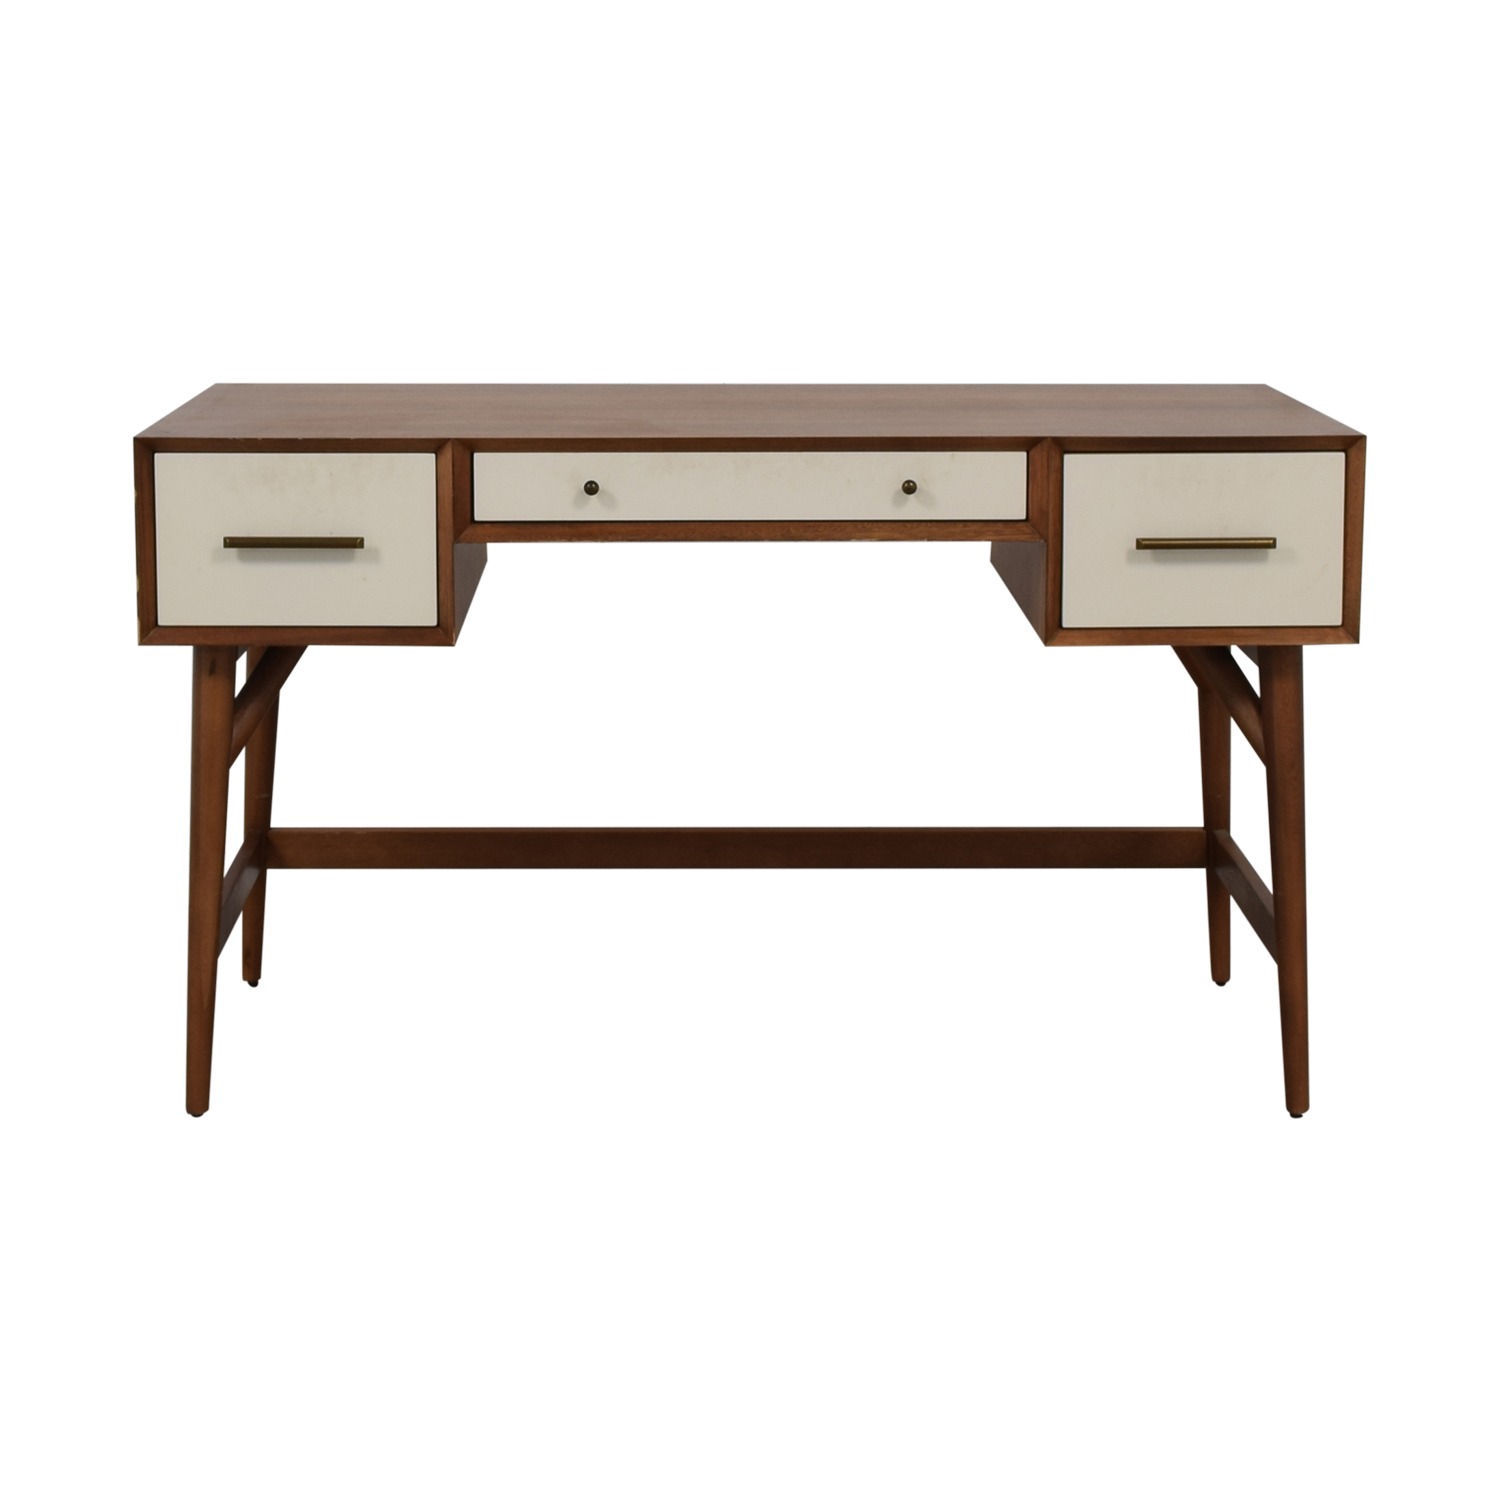 West Elm West Elm Wood and White Mid-Century Desk Three-Drawer Desk